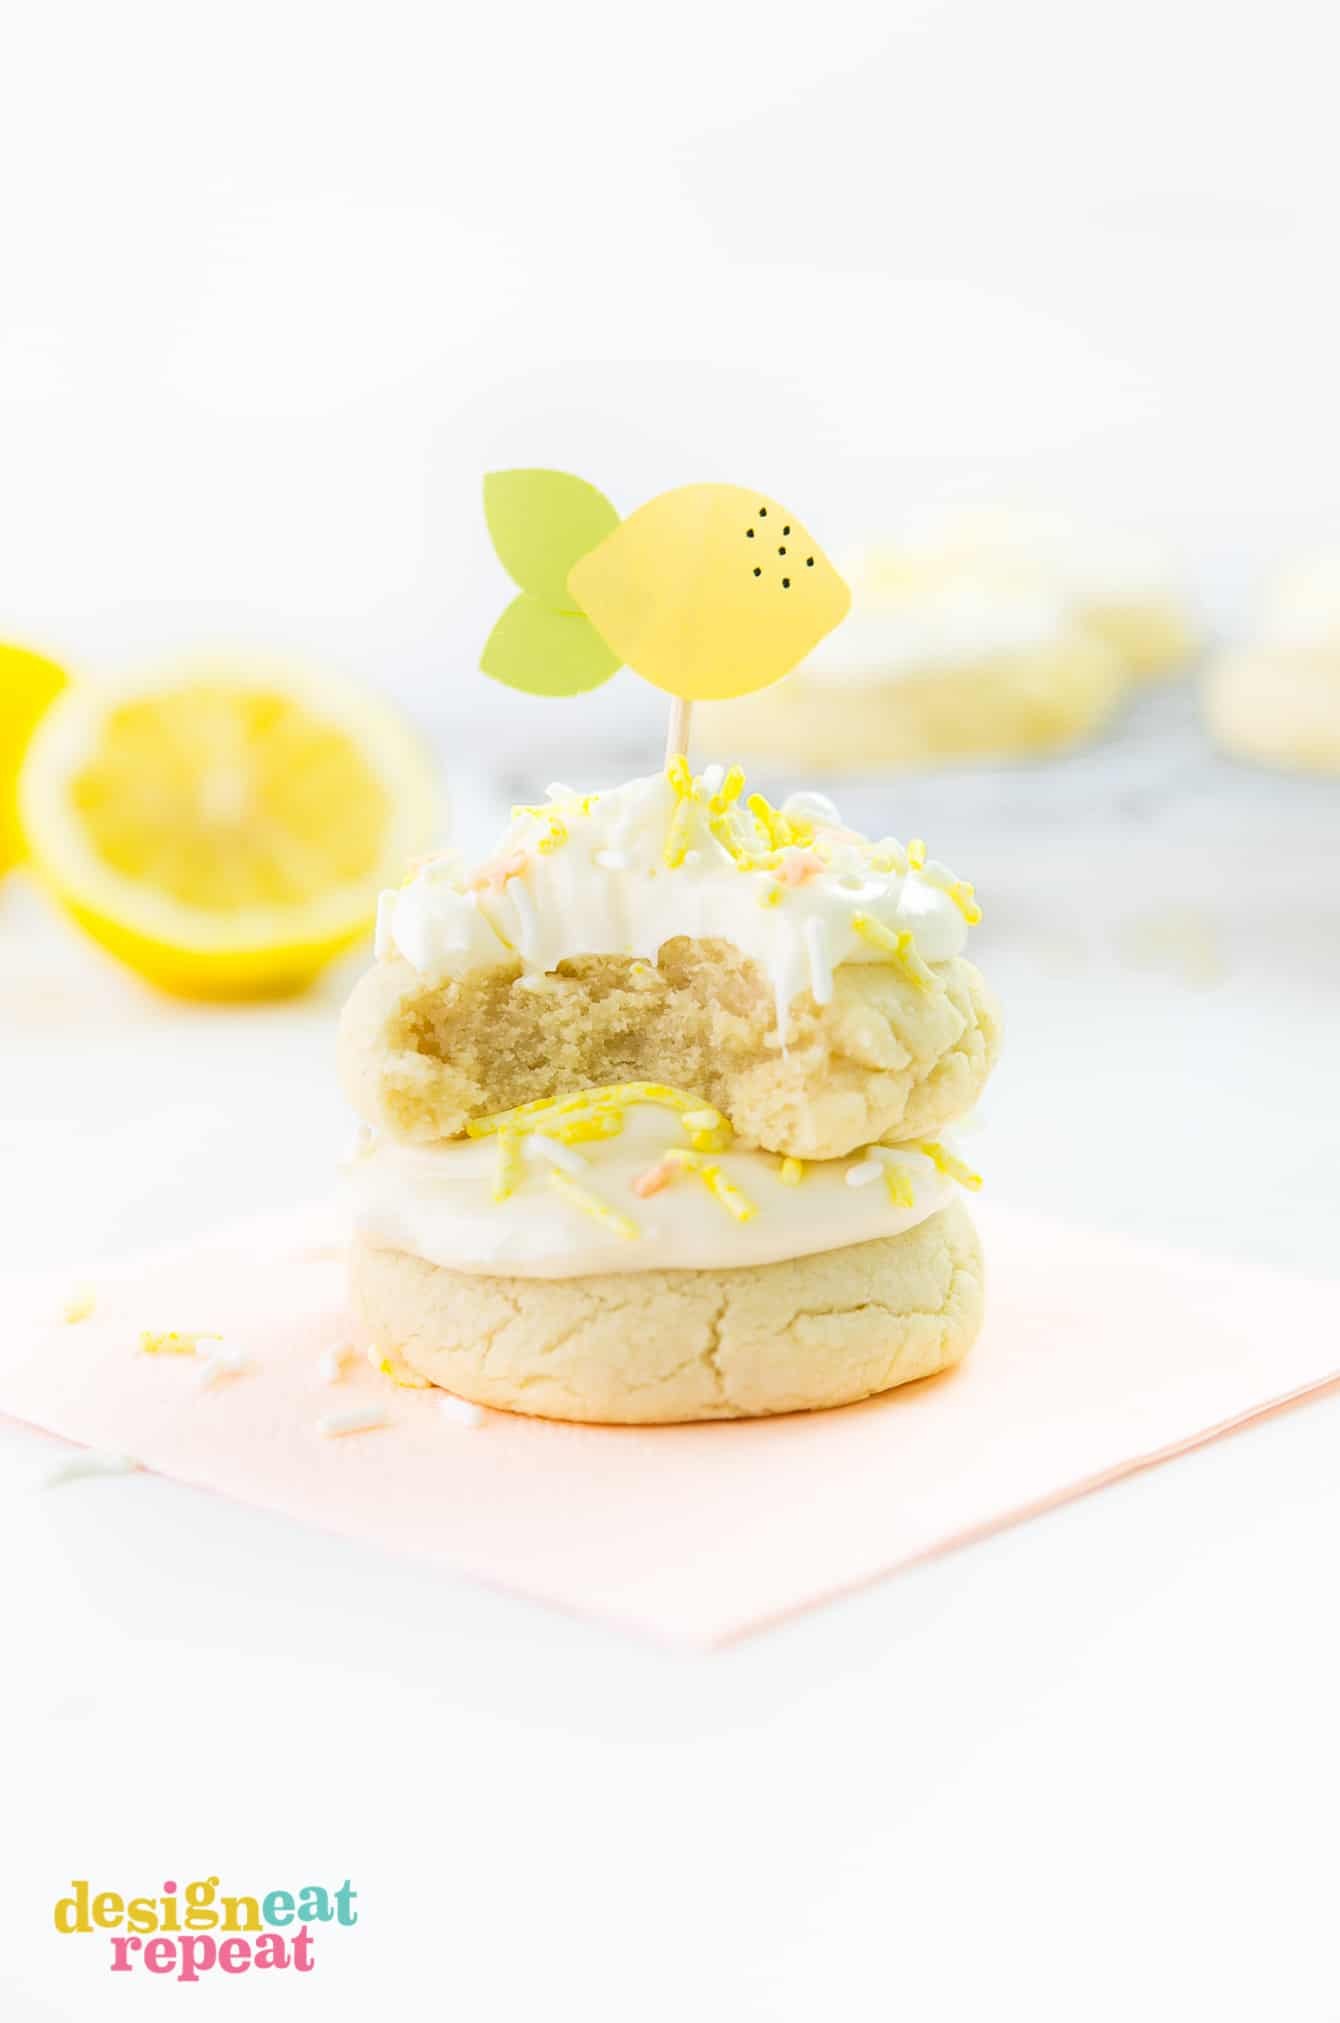 Treat yourself to one of these delicious Soft & Thick Lemon Sugar Cookies. They are easy to make and are infused with a refreshing, light lemon flavor!